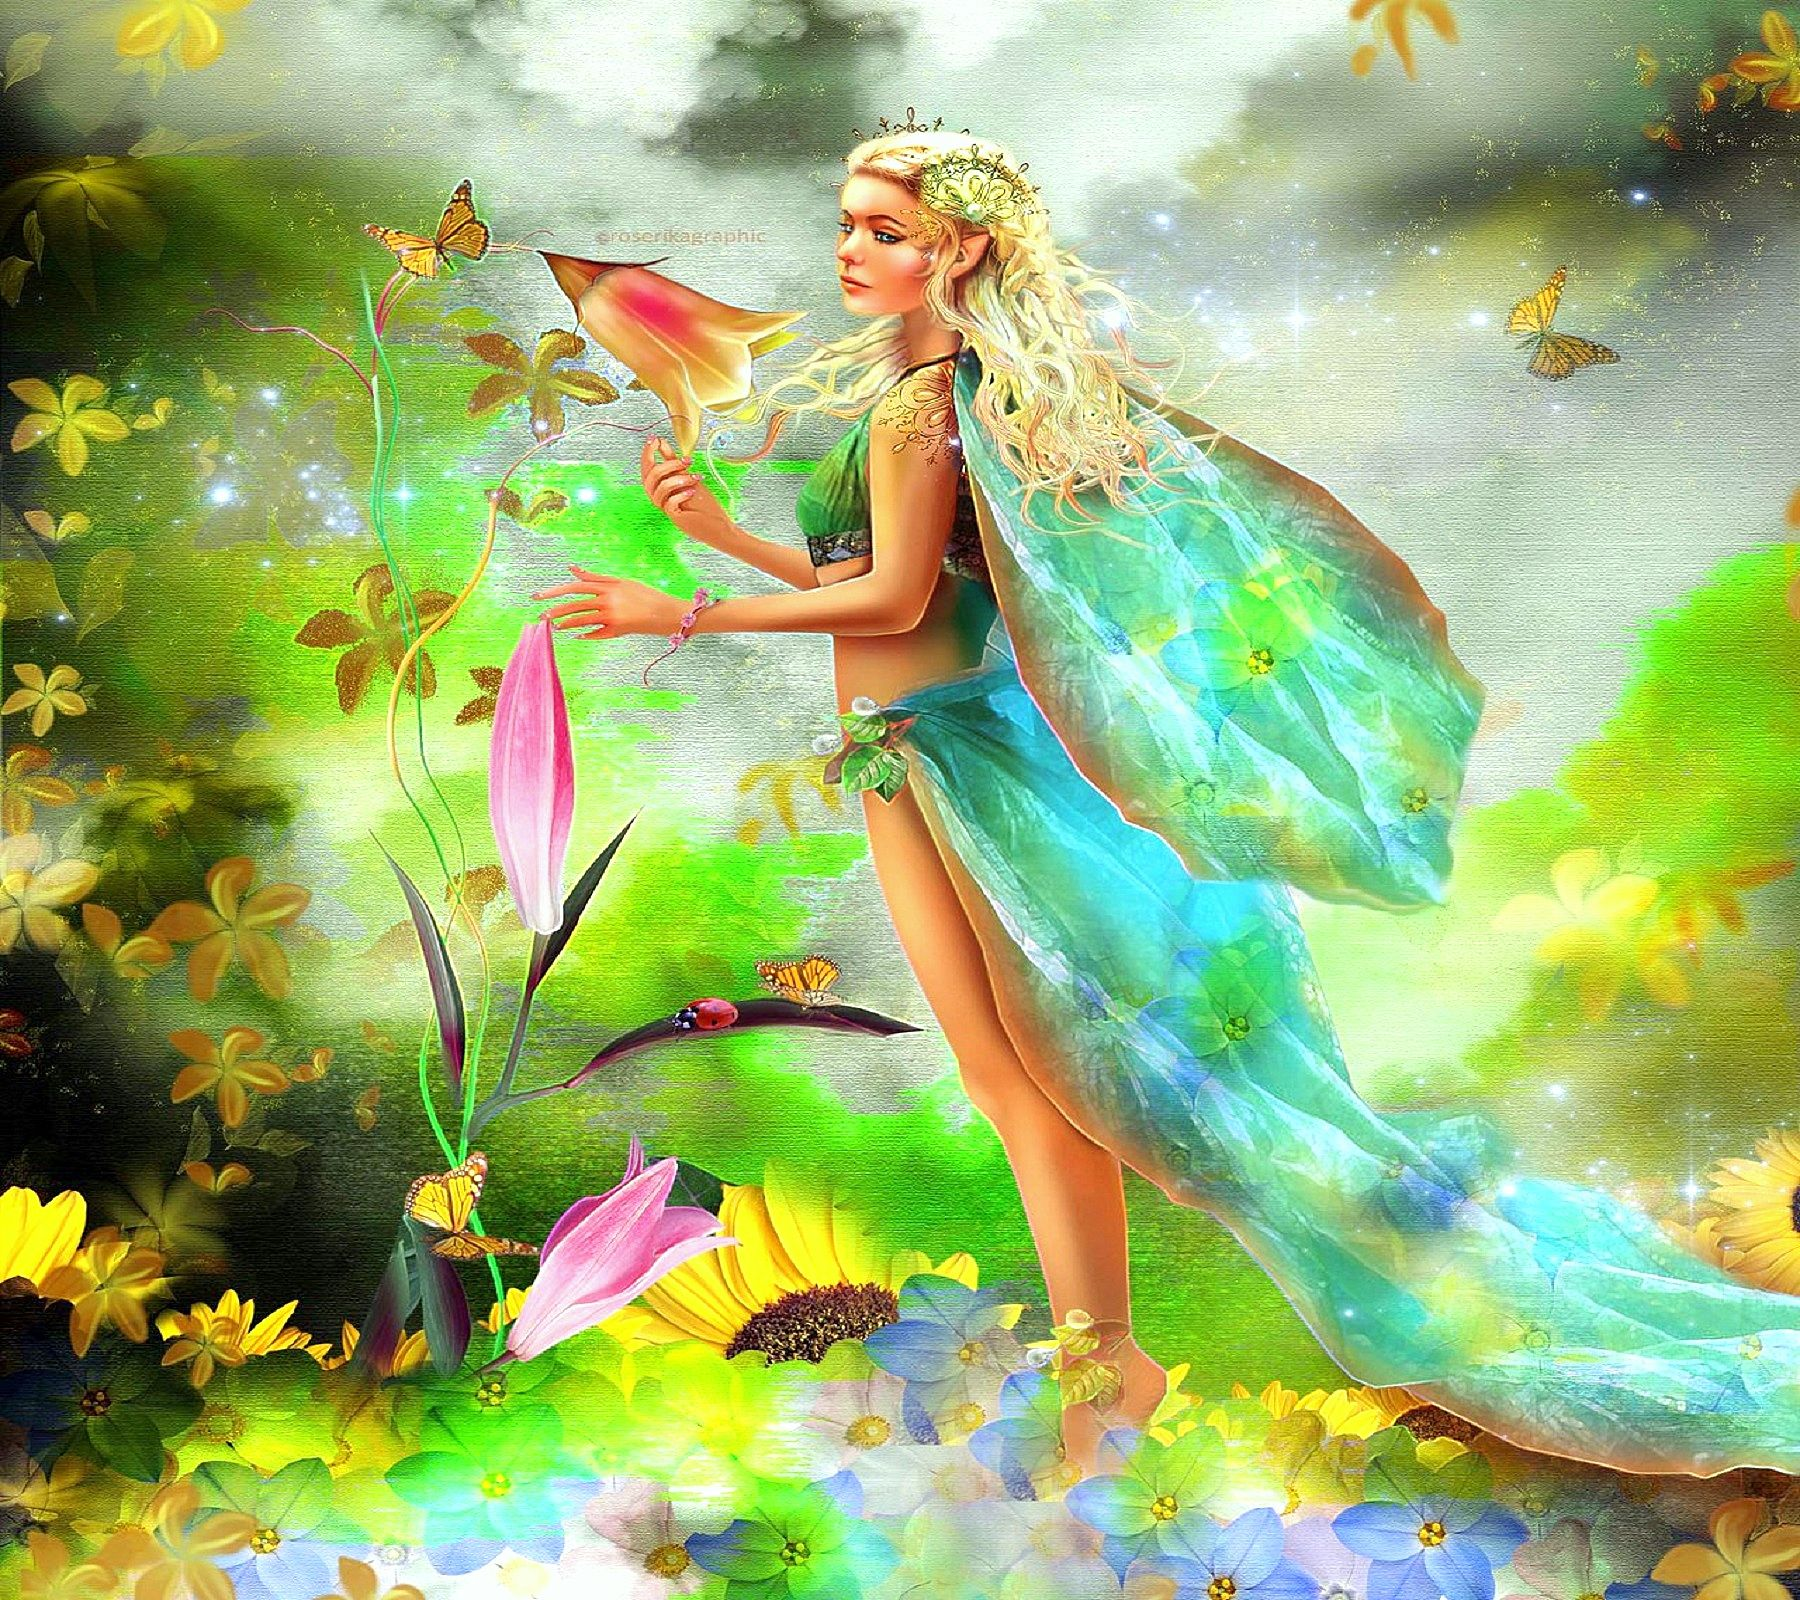 Spring Fairy Wallpaper Fairy In Spring Desktop HD Wallpapers Download Free Images Wallpaper [1000image.com]